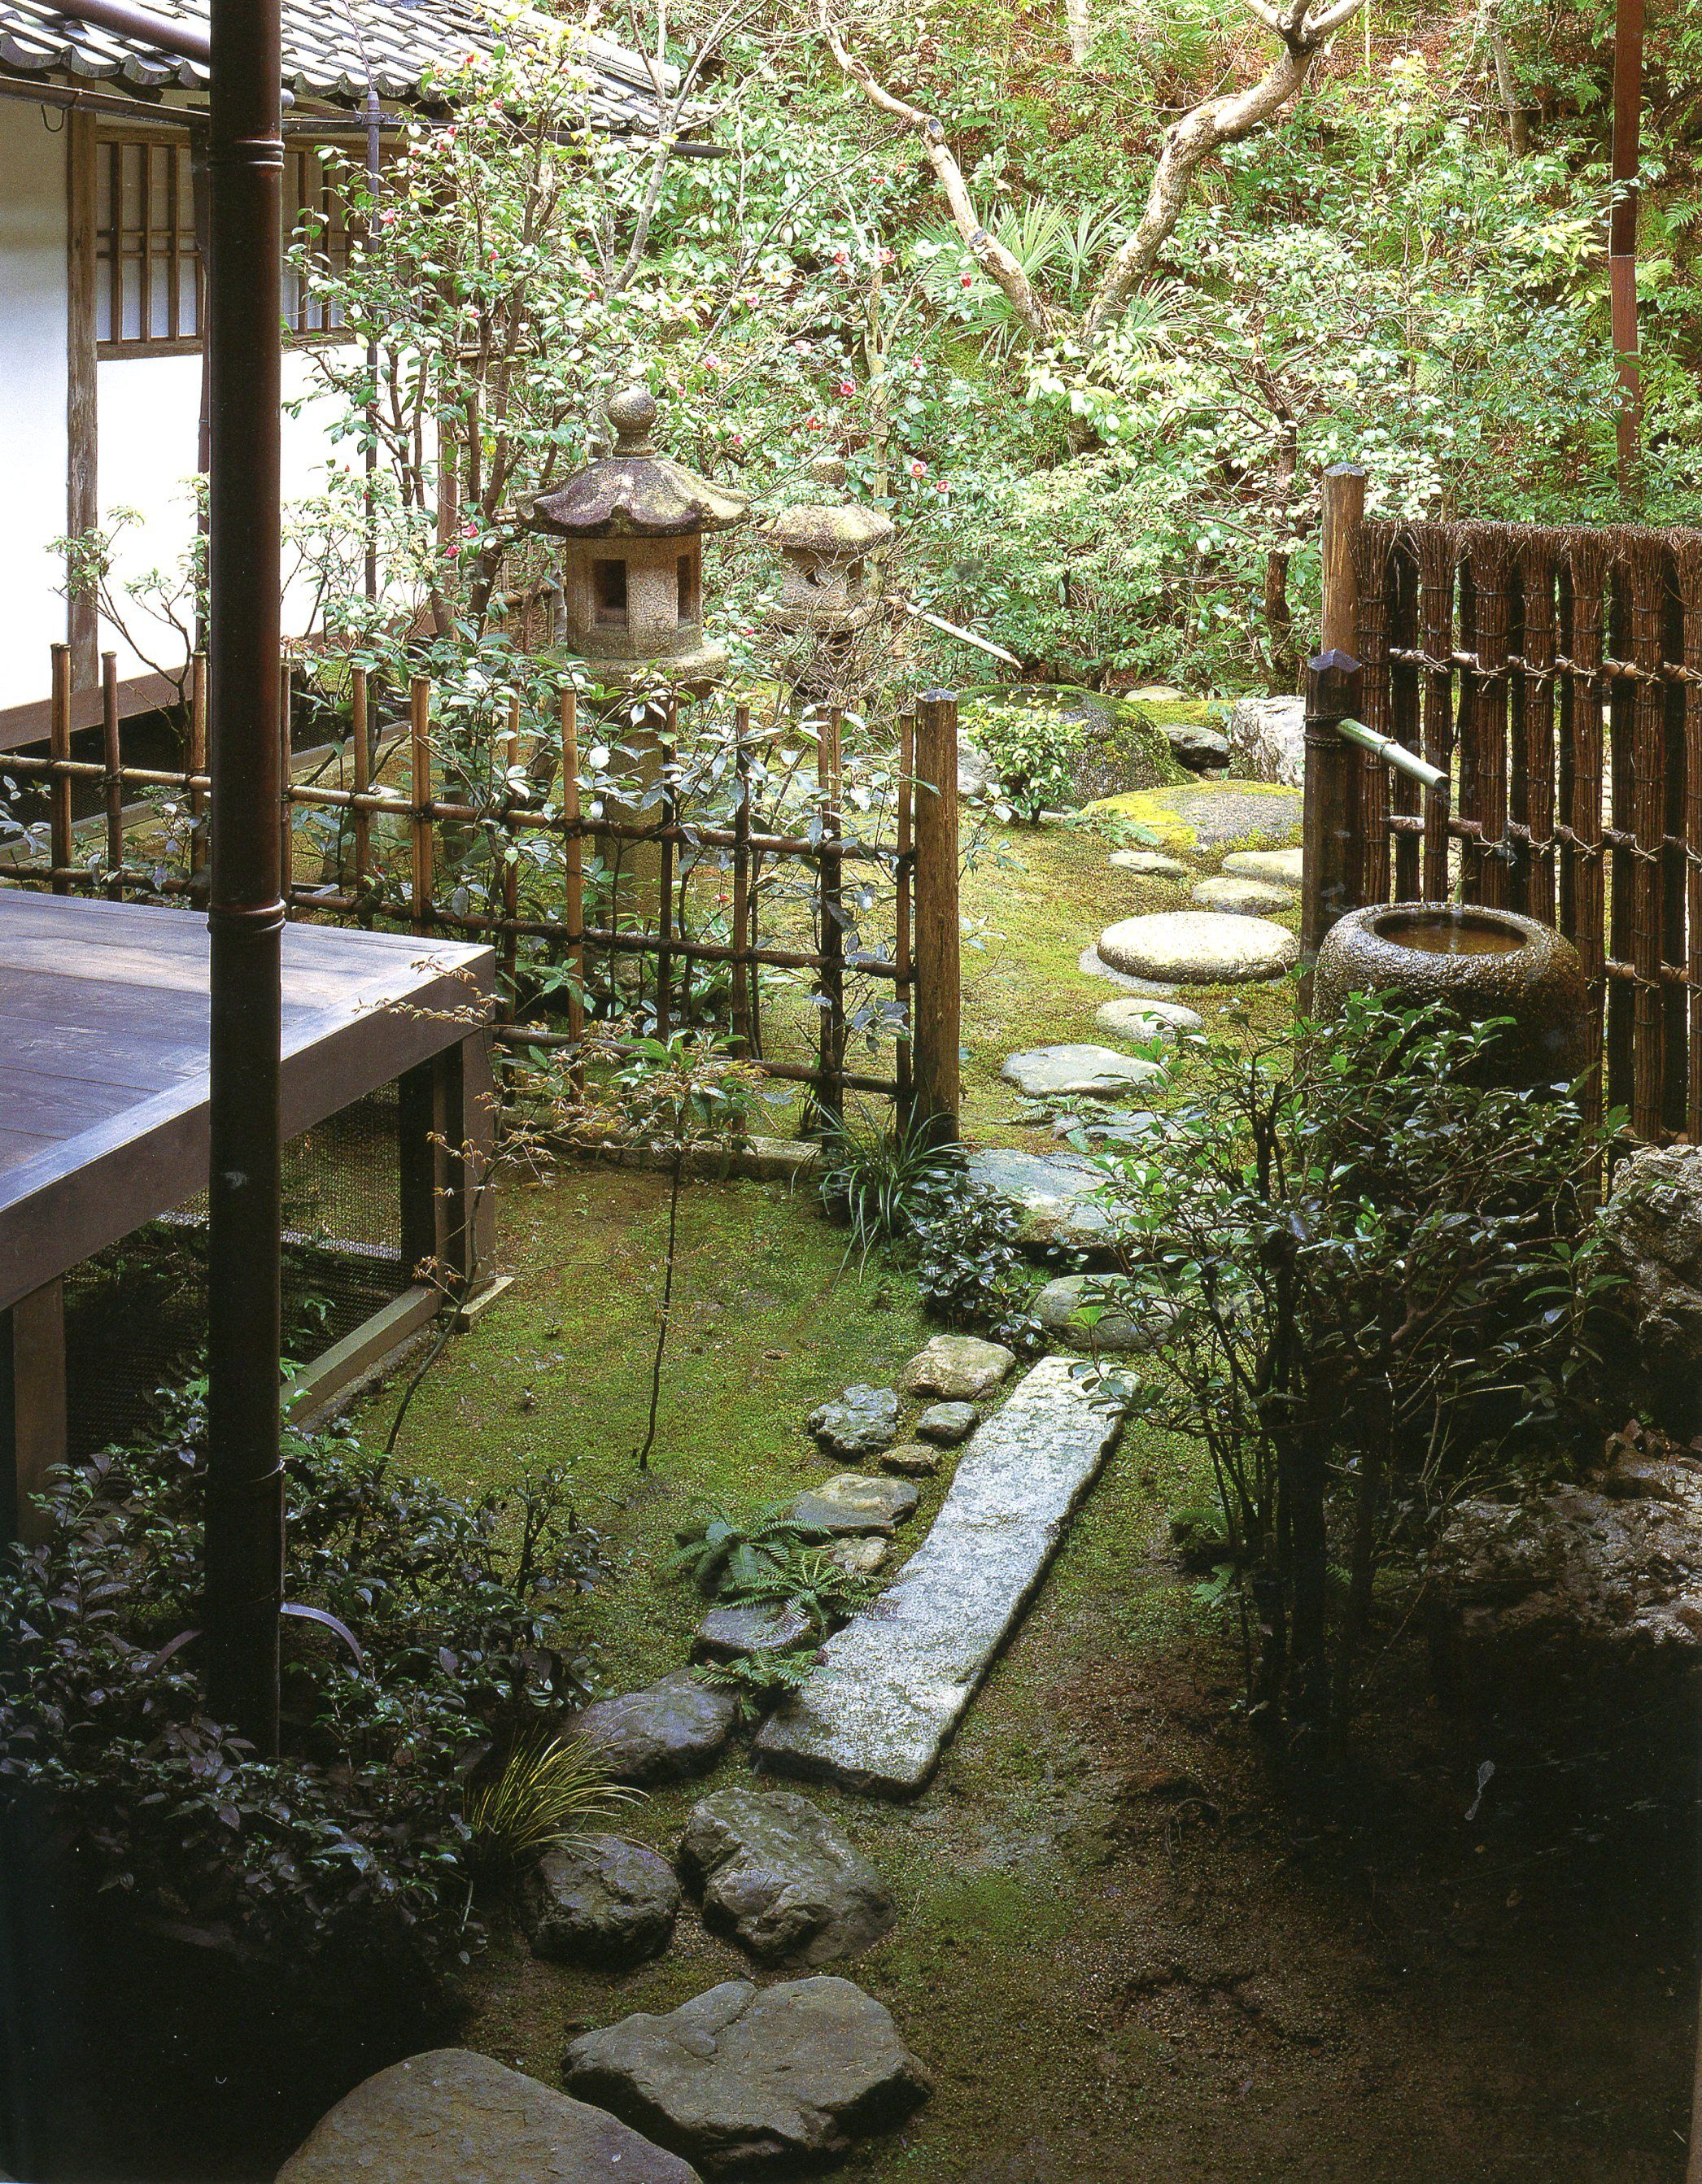 8e1bdafa5420afb1c34d617eca2747e7 - Landscapes For Small Spaces Japanese Courtyard Gardens